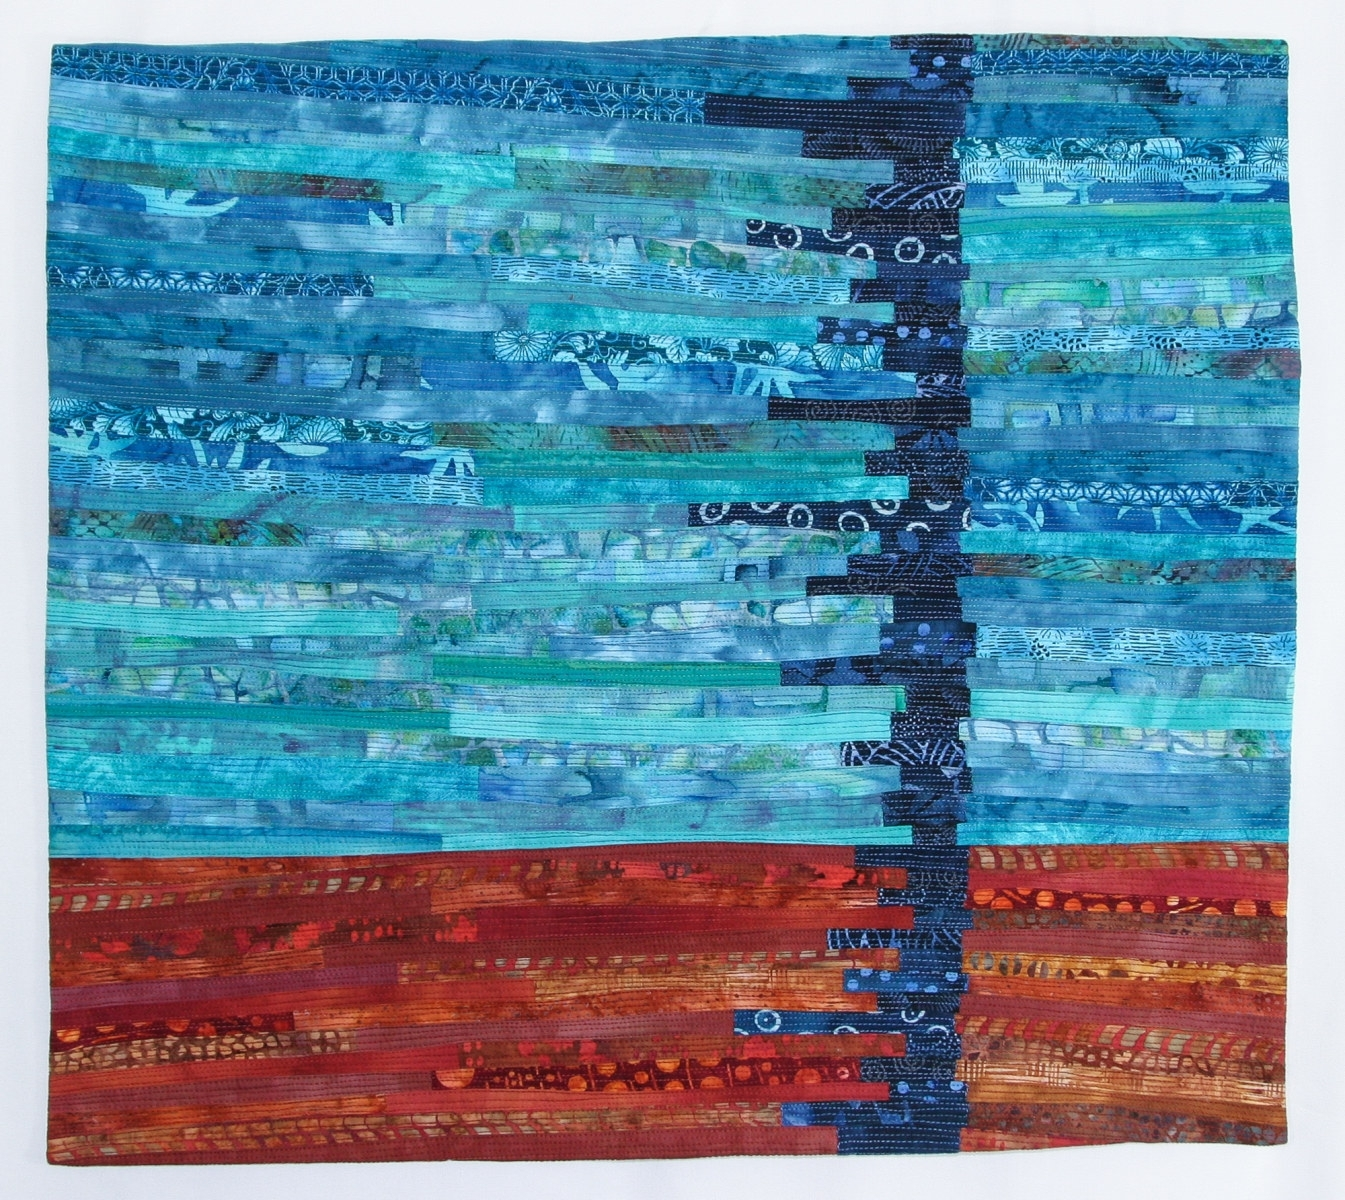 Tafa: The Textile And Fiber Art List | Mardell Rampton – Textile Intended For 2018 Abstract Textile Wall Art (View 12 of 15)